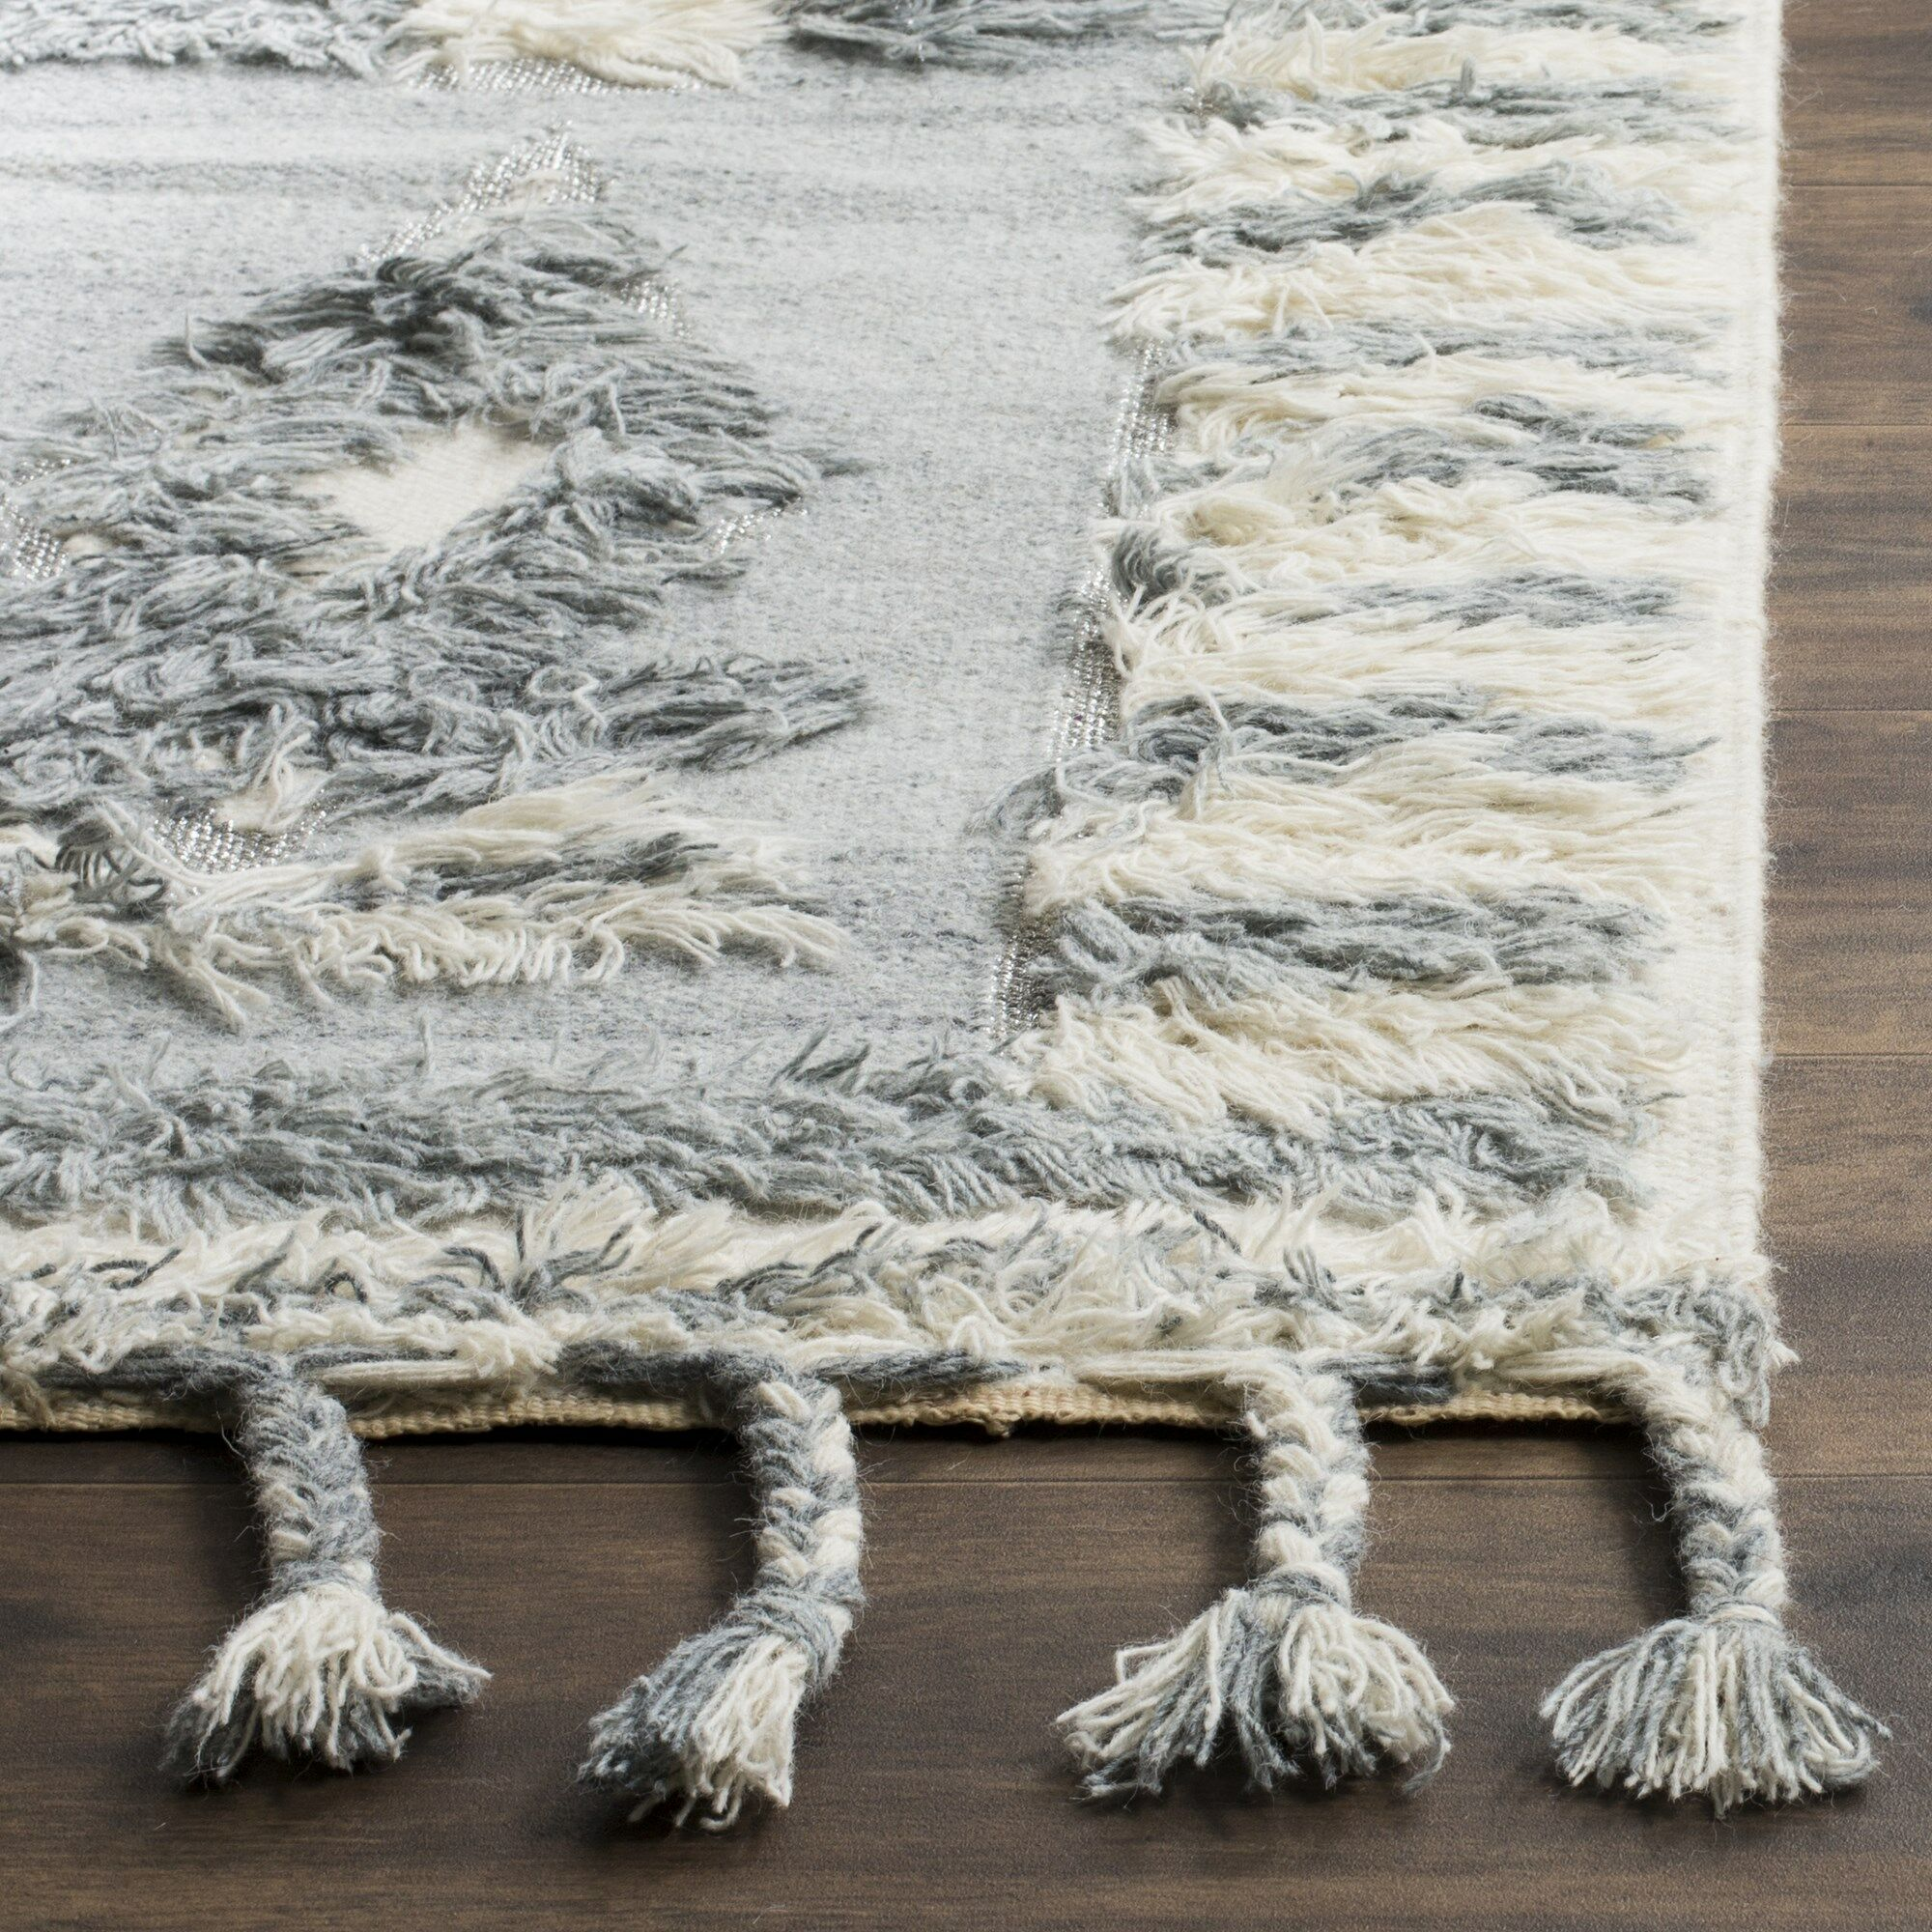 Maffei Knotted Cotton Gray Area Rug Rug Size: Rectangle 6' x 9'